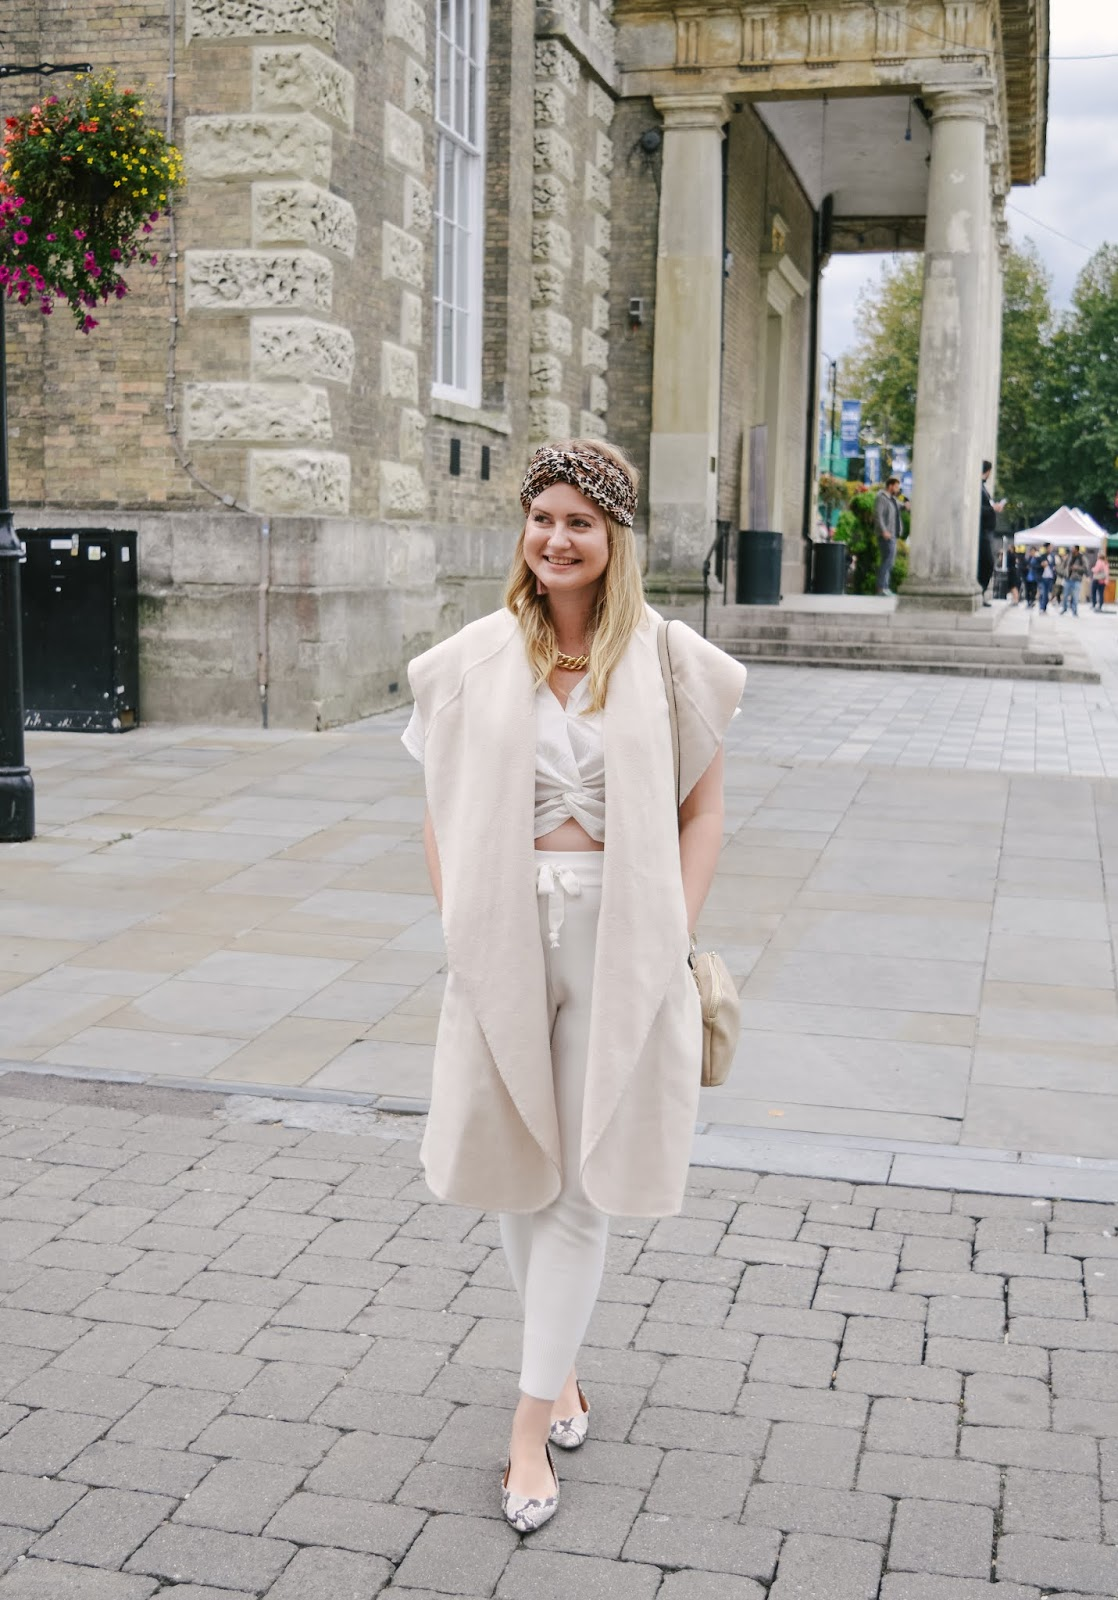 Hampshire bloggers, fashion blog, UK fashion blog, tips on how to manage burnout